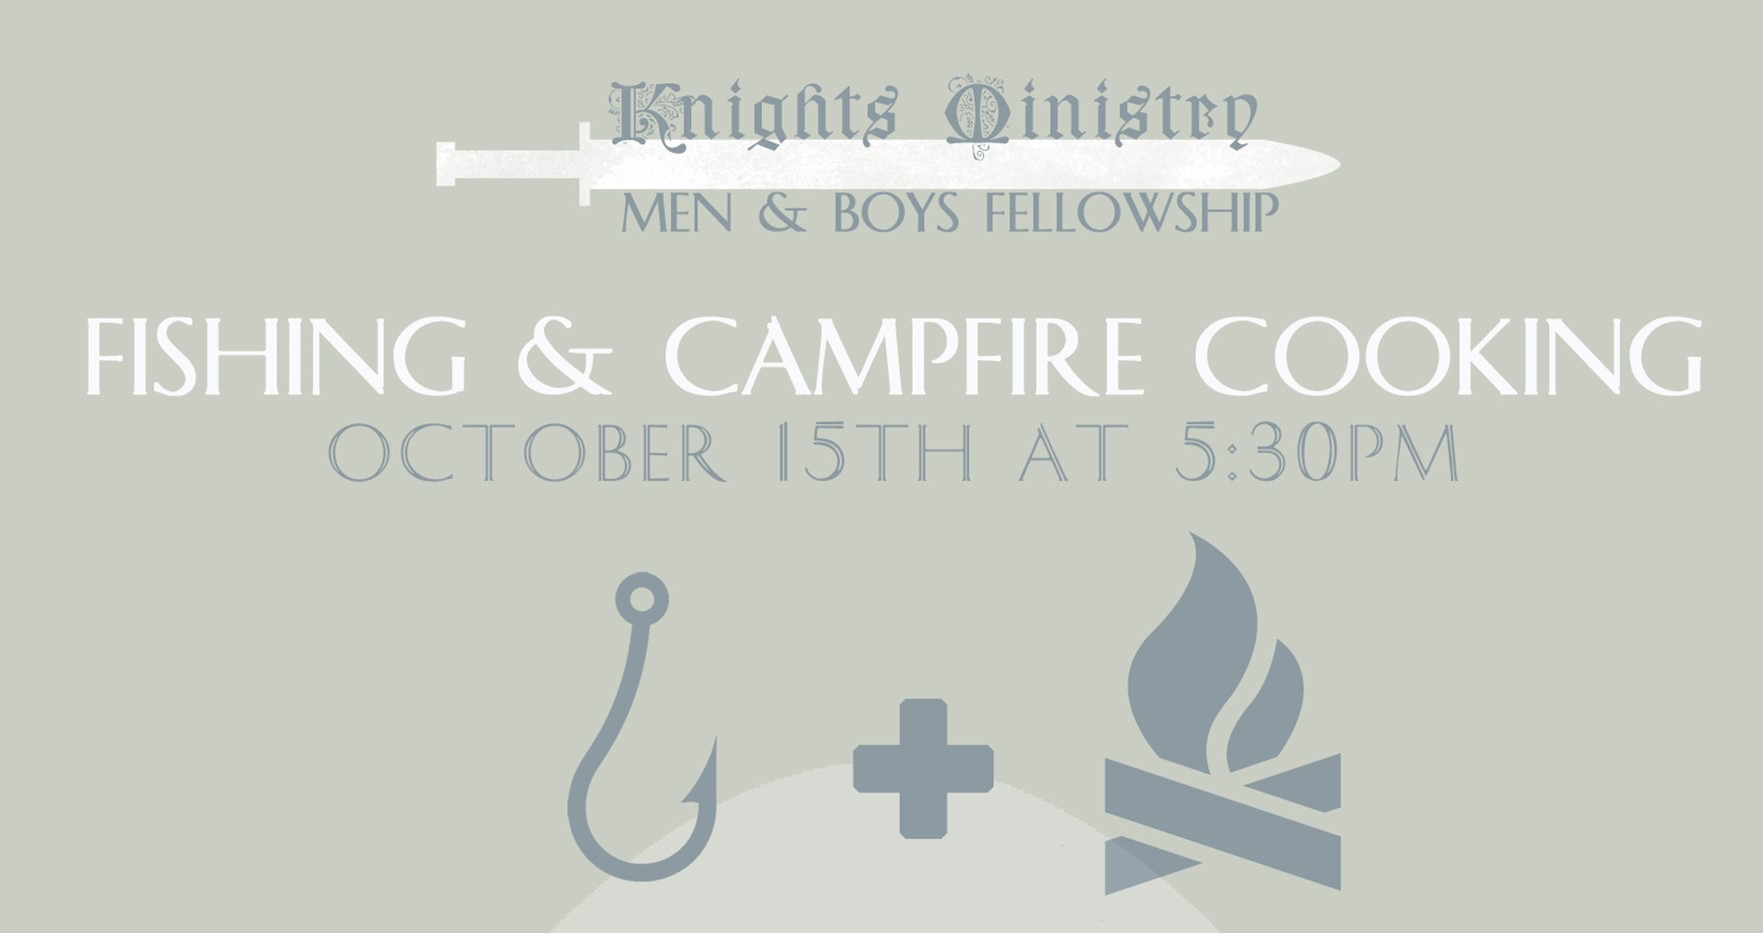 Knights Ministry image